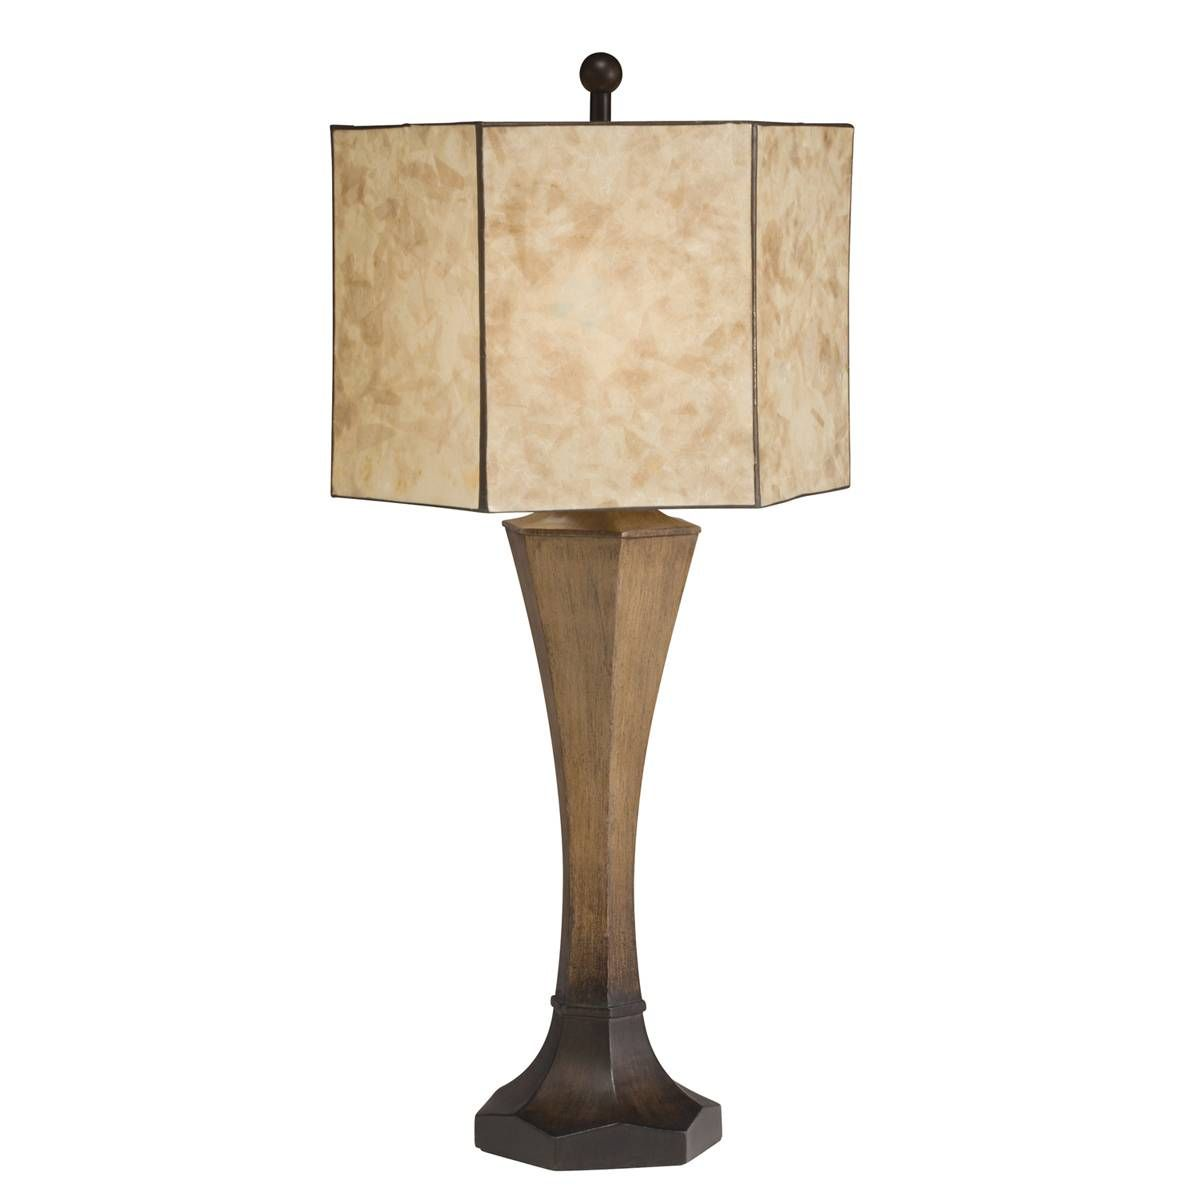 Kichler 70821ca table lamp 1lt fluorescent in hand painted home kichler 70821ca table lamp 1lt fluorescent in hand painted home dcor kichler lamp fixture model geotapseo Gallery